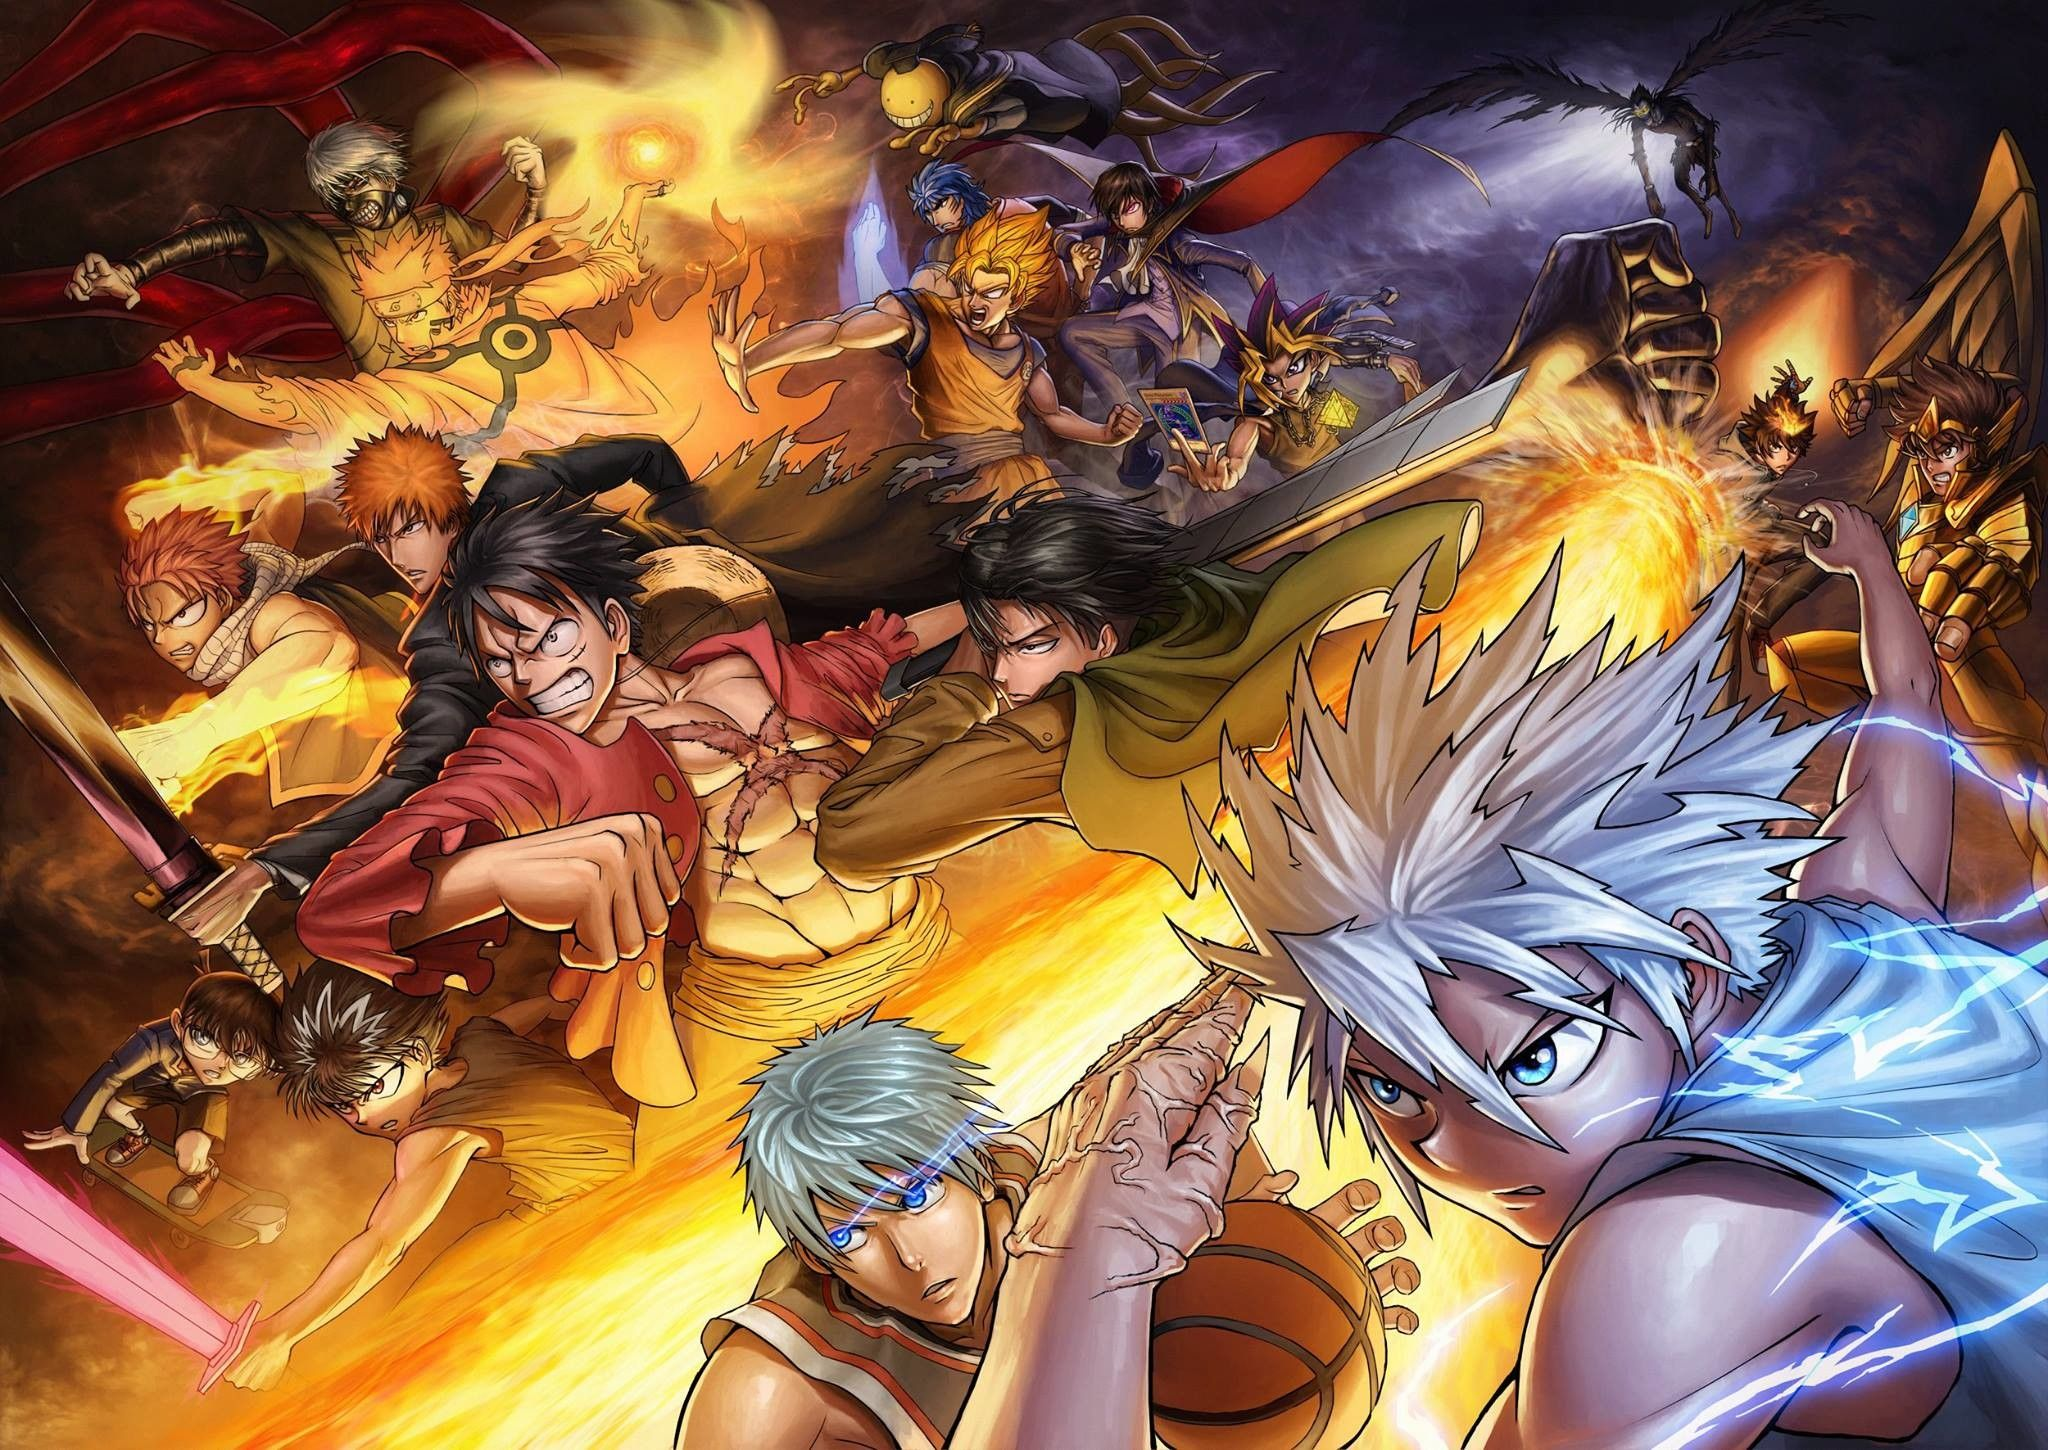 2048x1450 download-free-assassination-classroom-wallpapers-2048x1450 ...